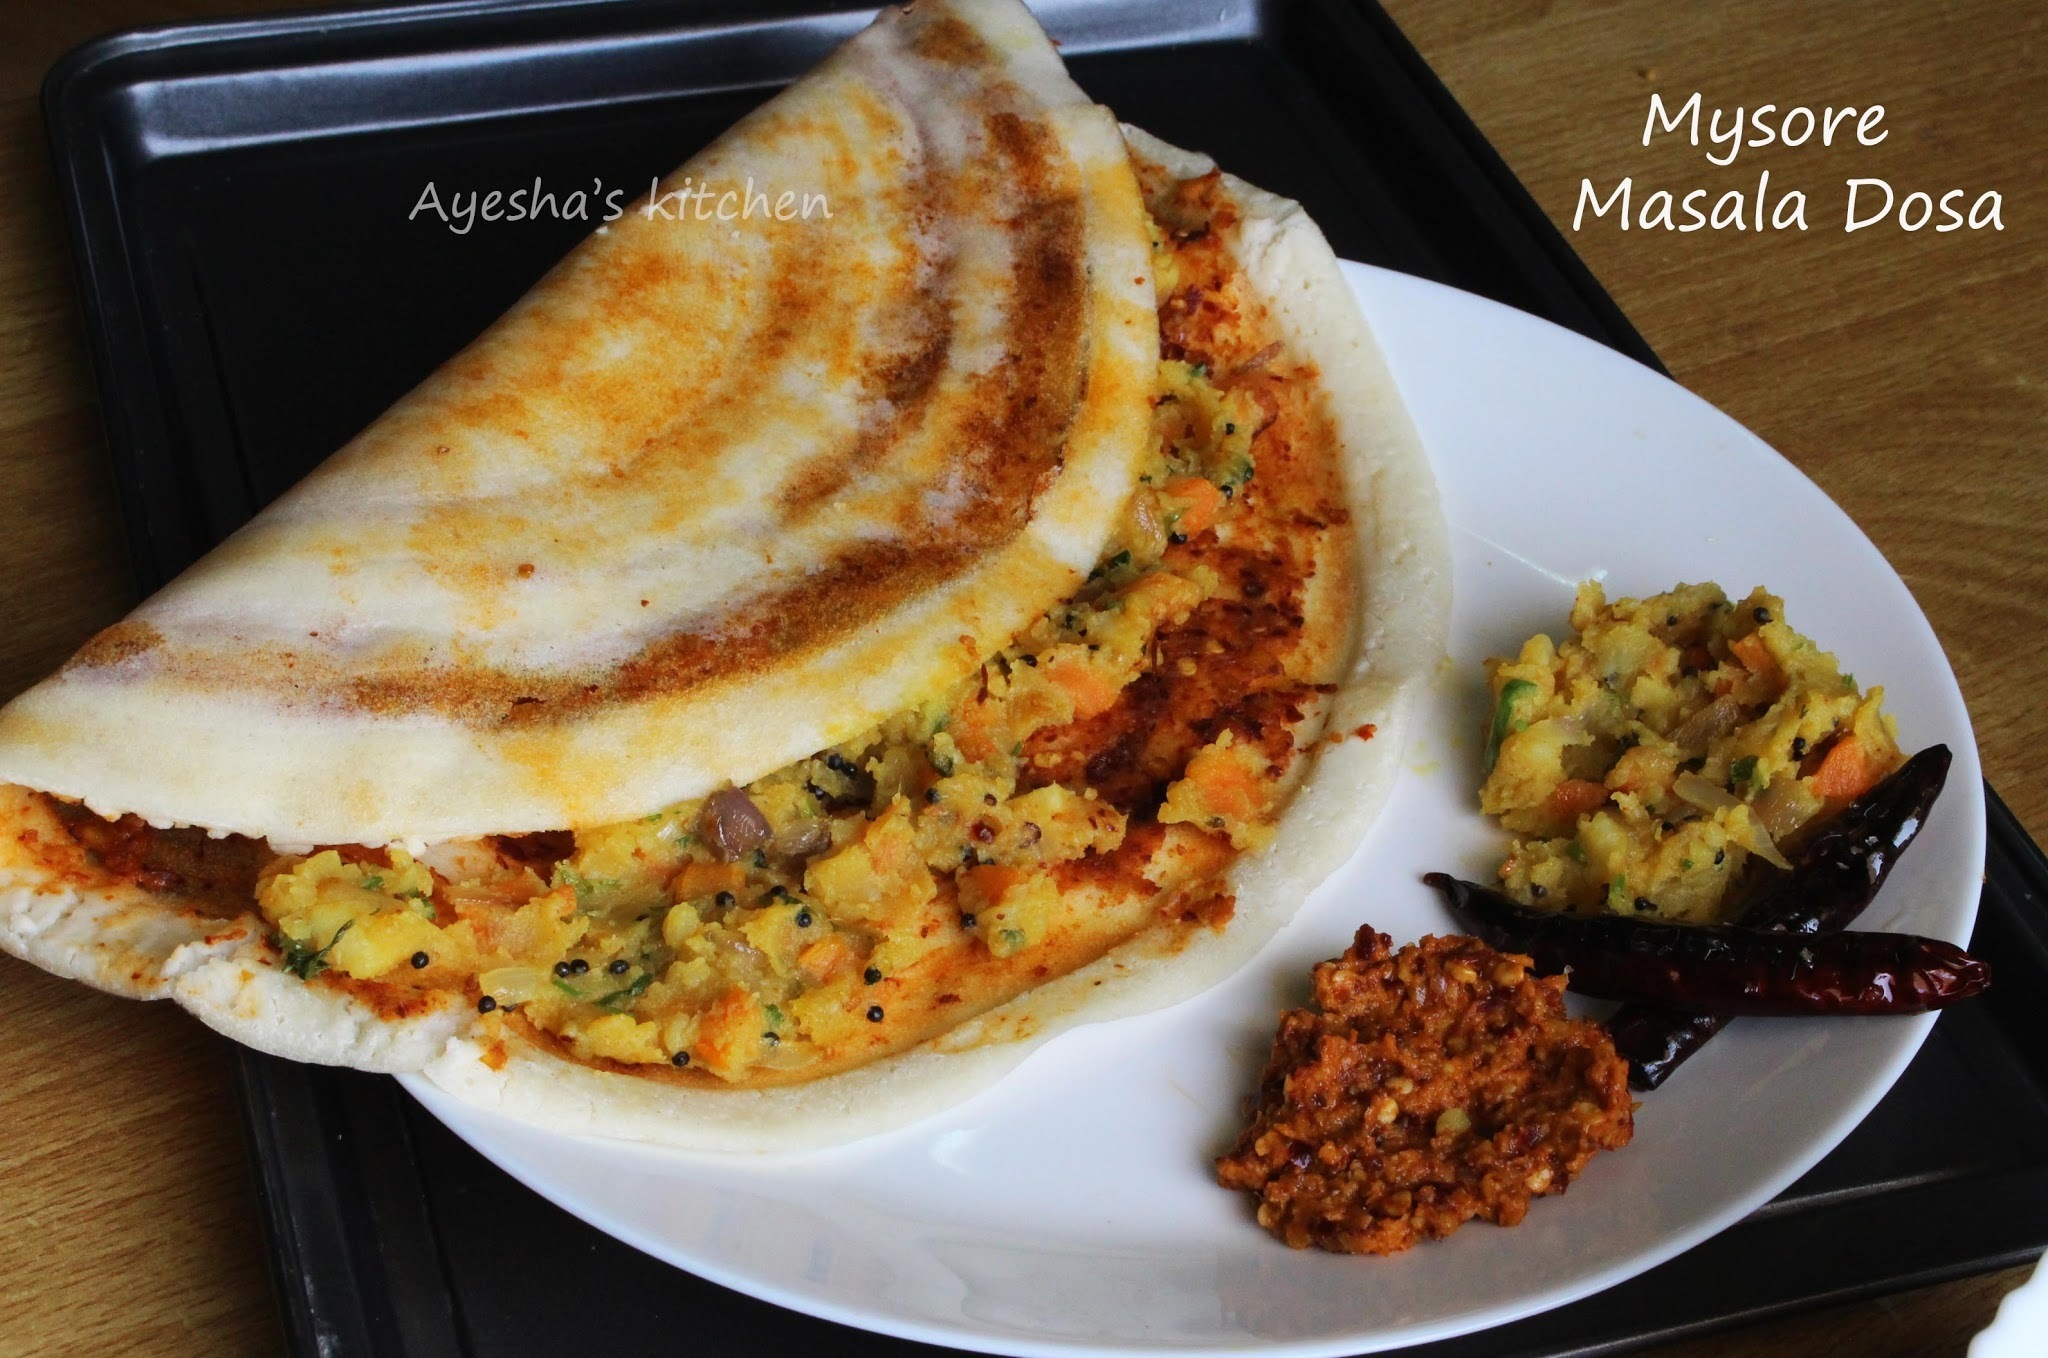 MYSORE MASALA DOSA - SOUTH INDIAN BREAKFAST